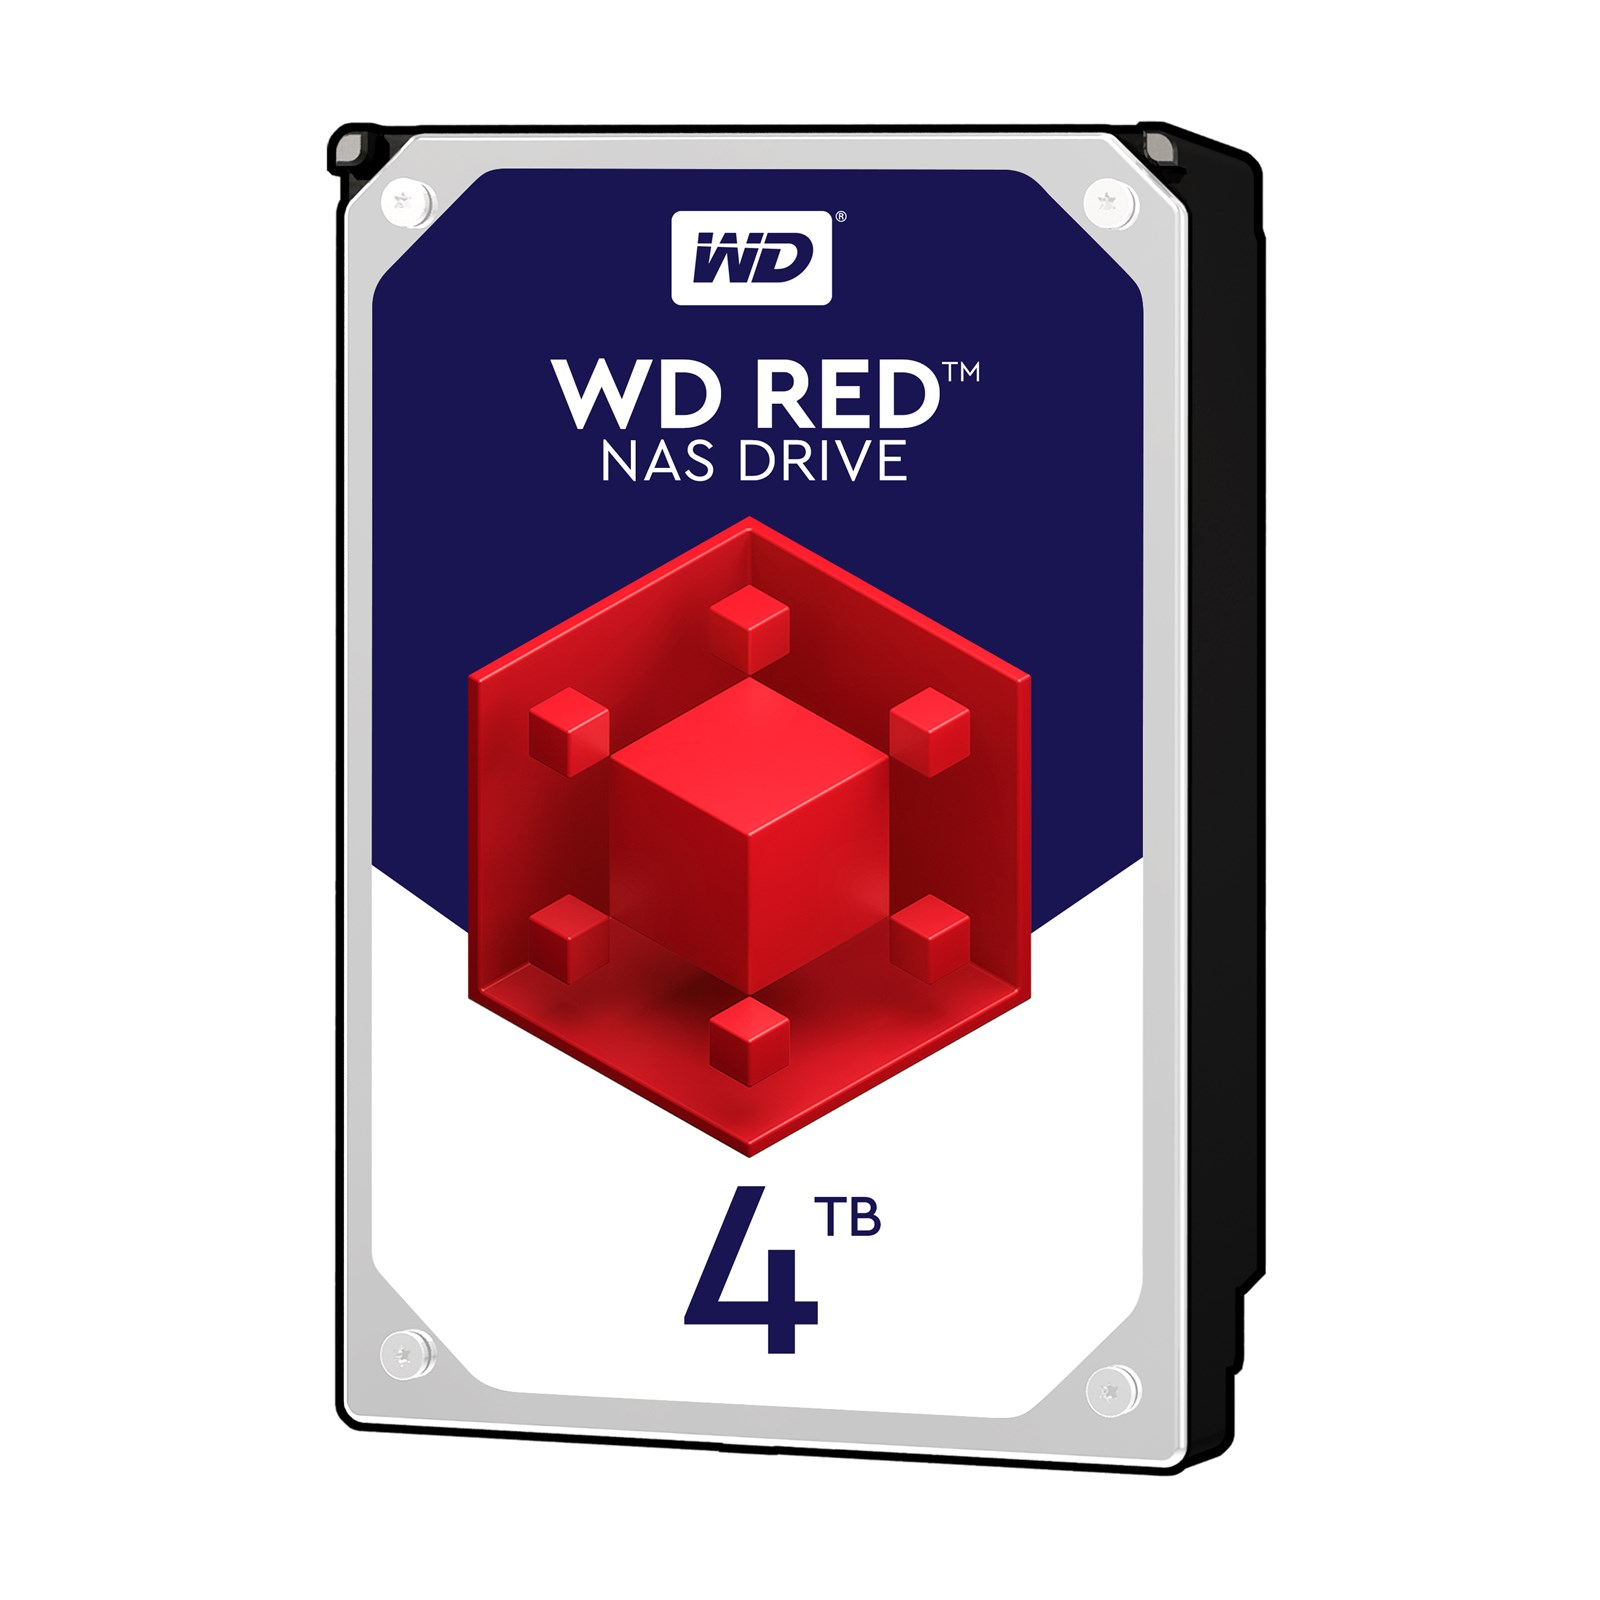 WD RED 4TB 5400RPM 64MB SATA3 6Gbit/sn WD40EFRX NAS HDD